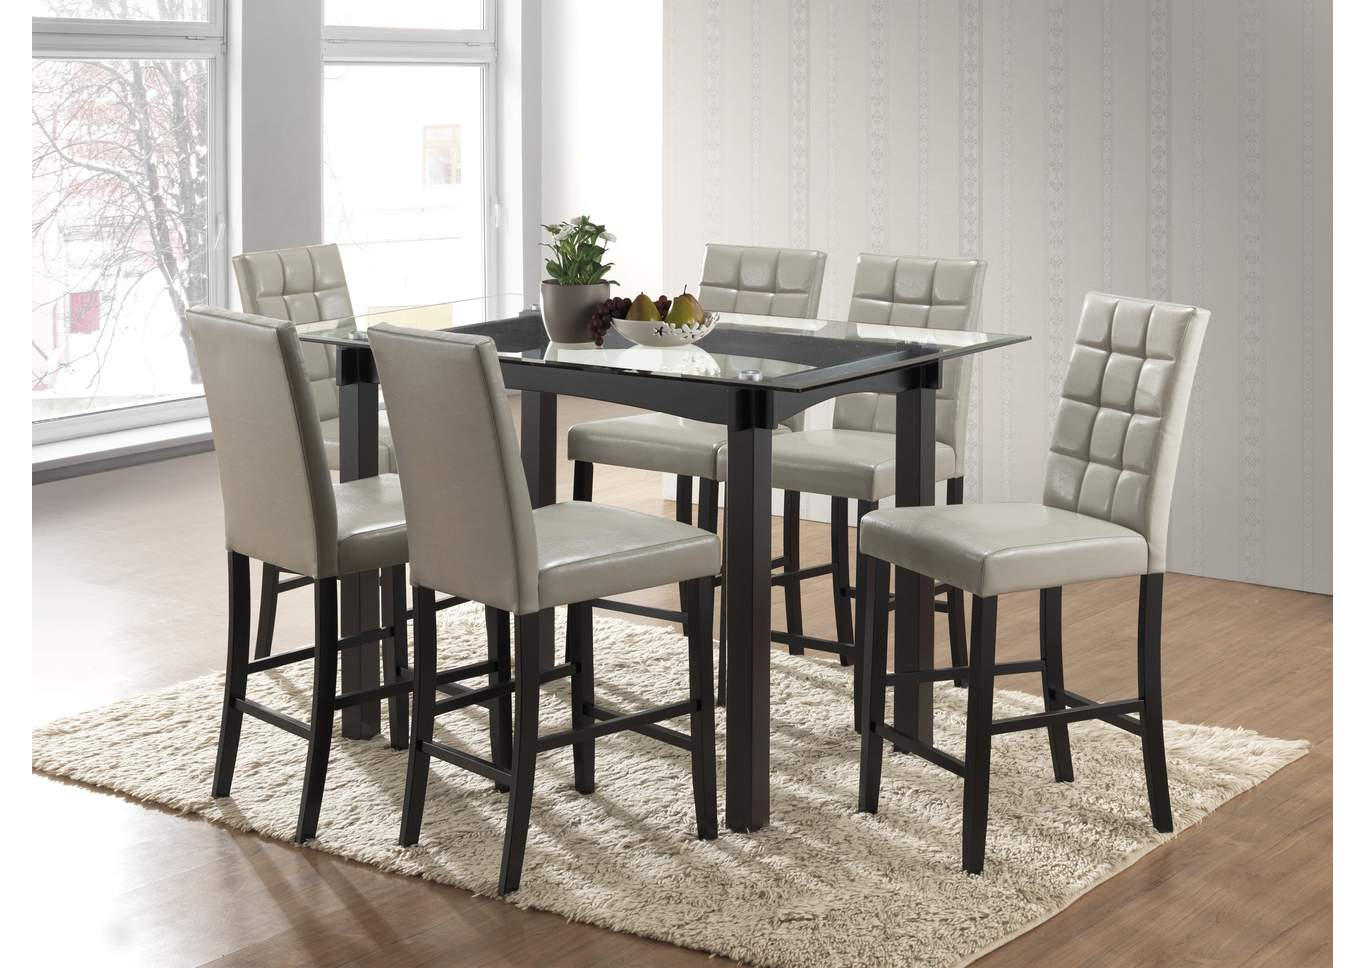 Ivan Smith Zora Counter Height Dining Table W Glass Top